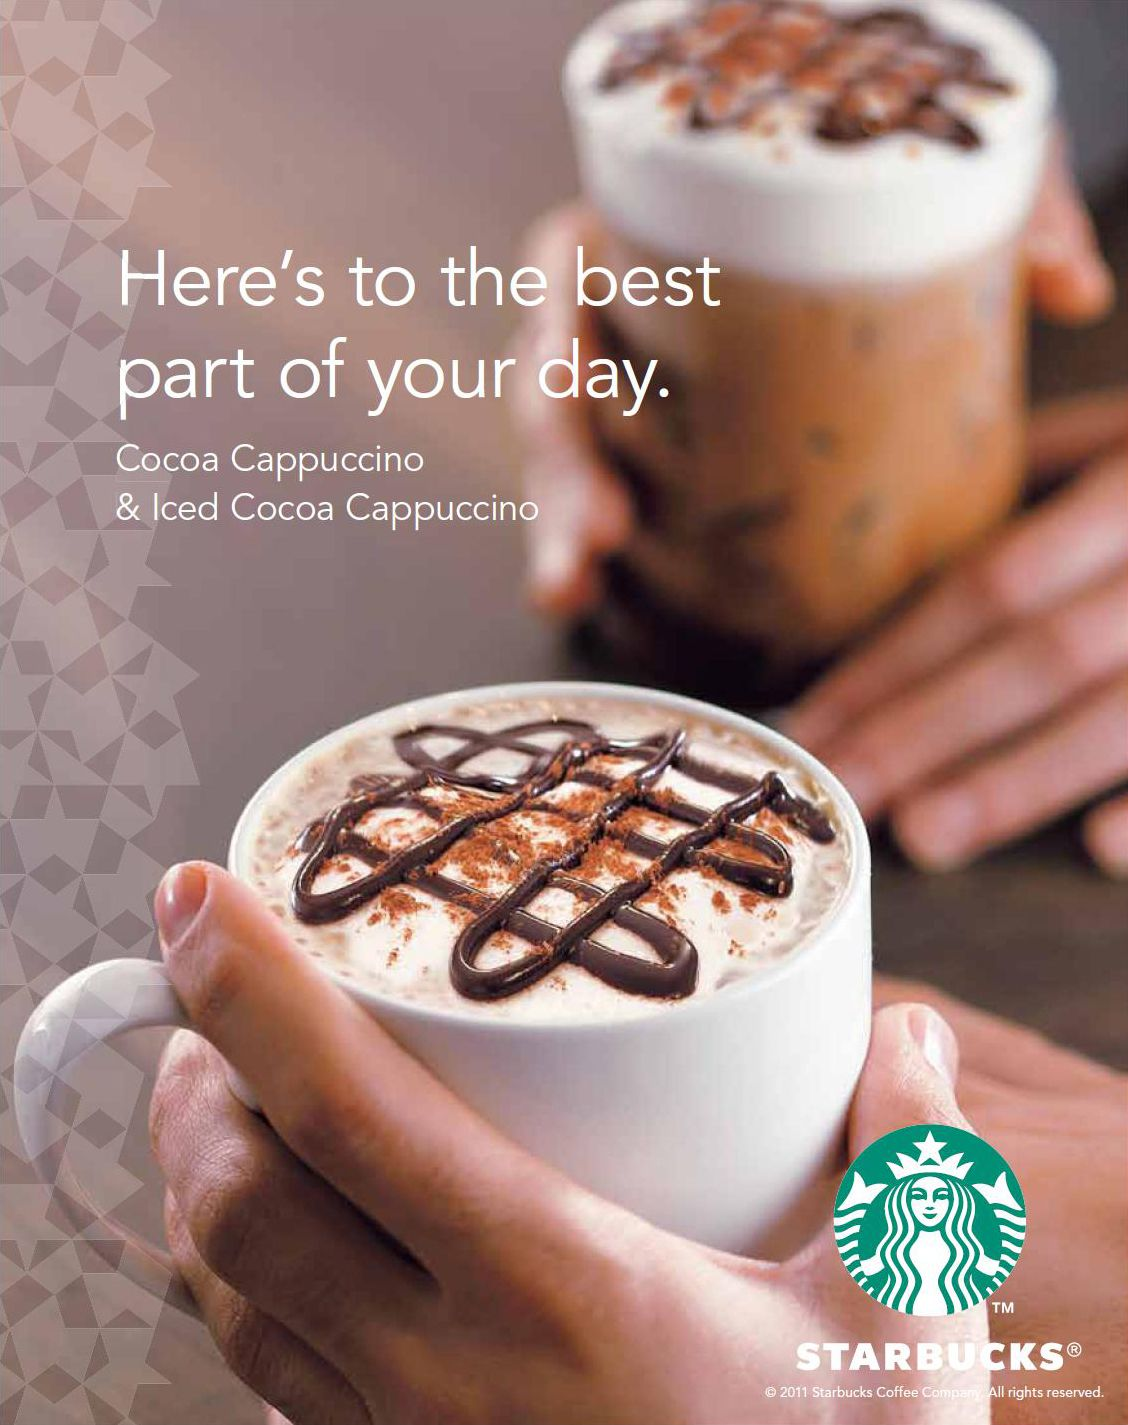 Morning! :) Here's to the best part of your day. Starbucks #Advertising